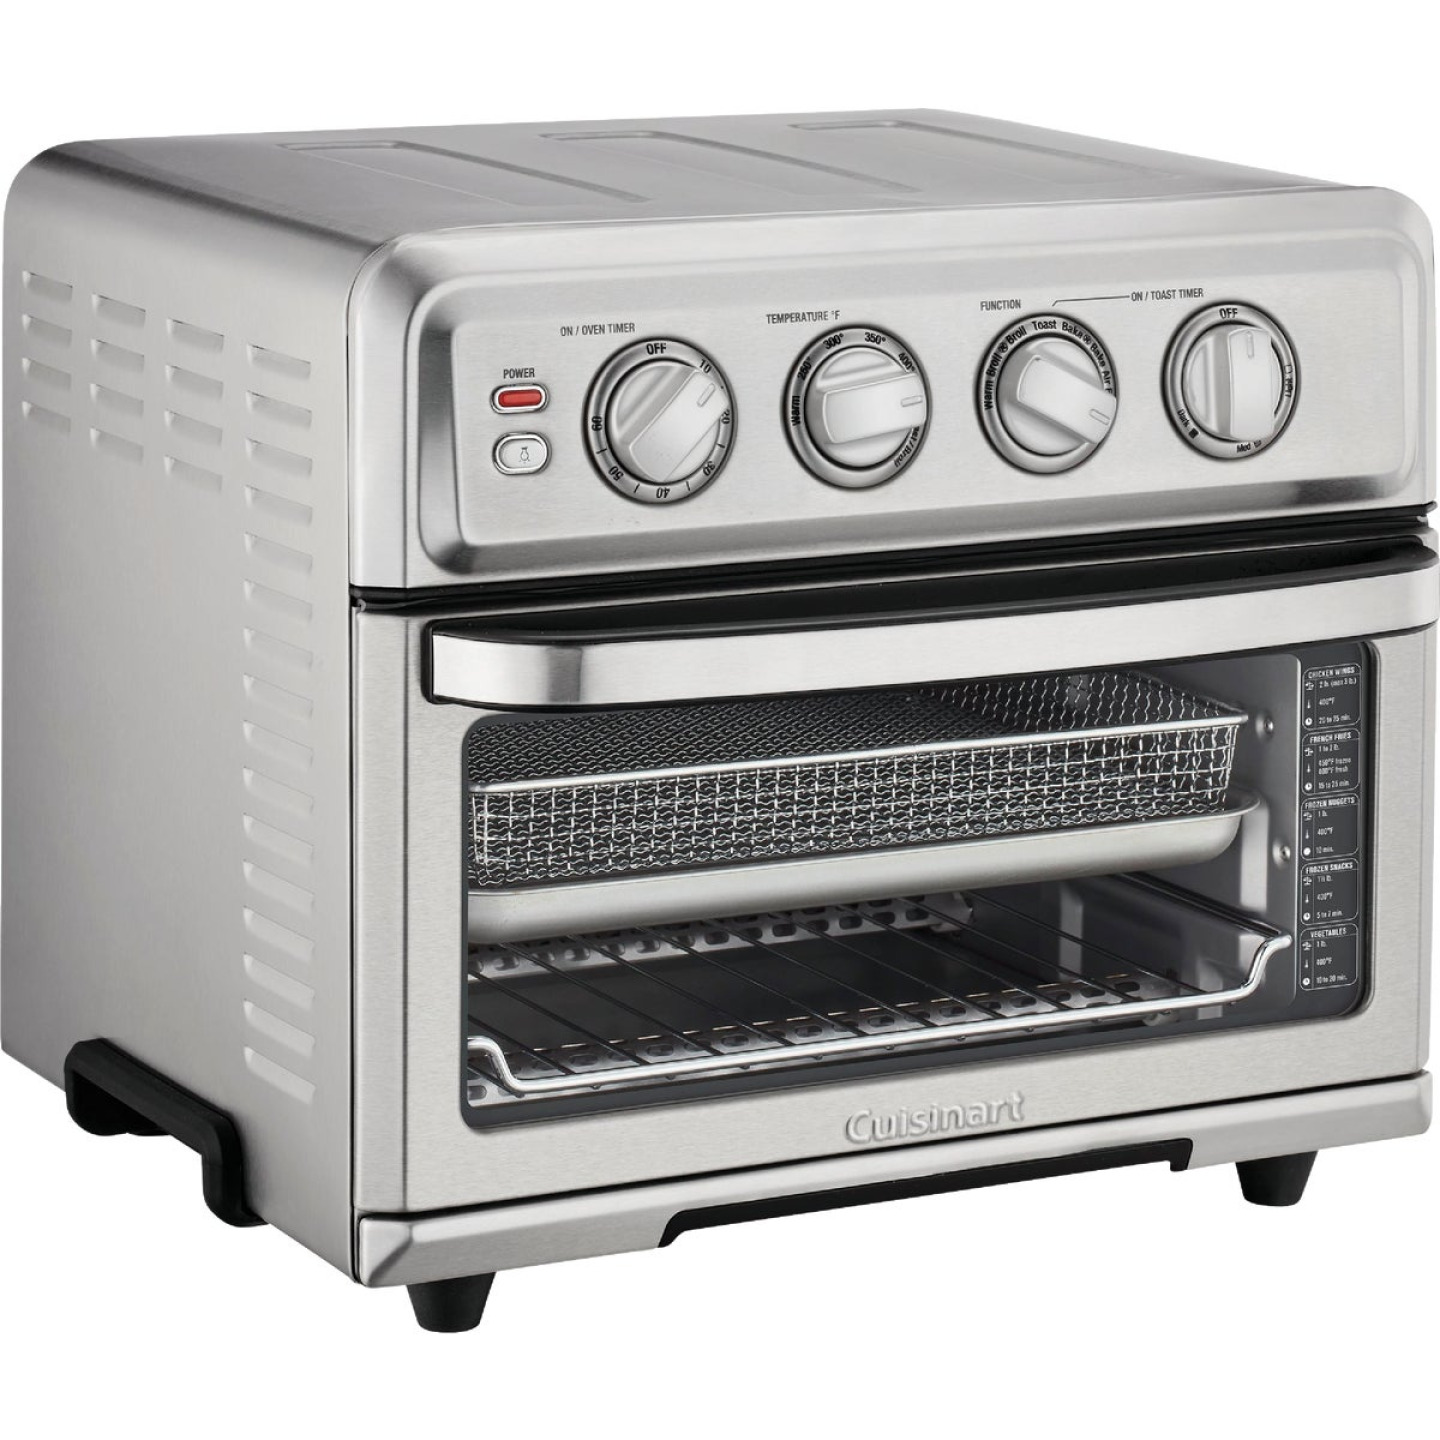 Cuisinart AirFryer Toaster Oven Image 1